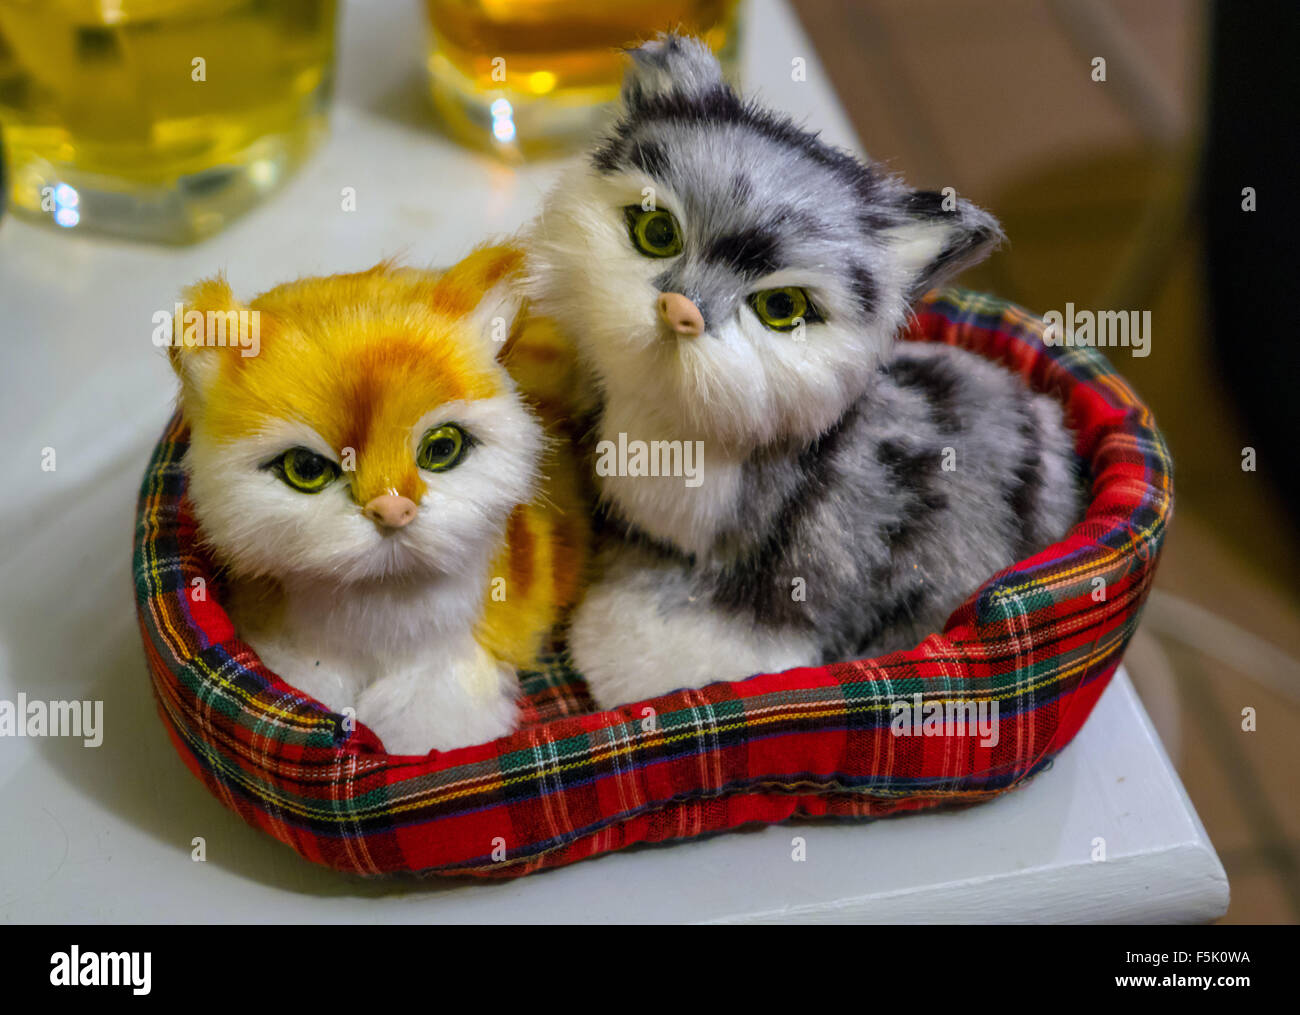 Two cute toy cays in tartan basket, looking at camera - Stock Image